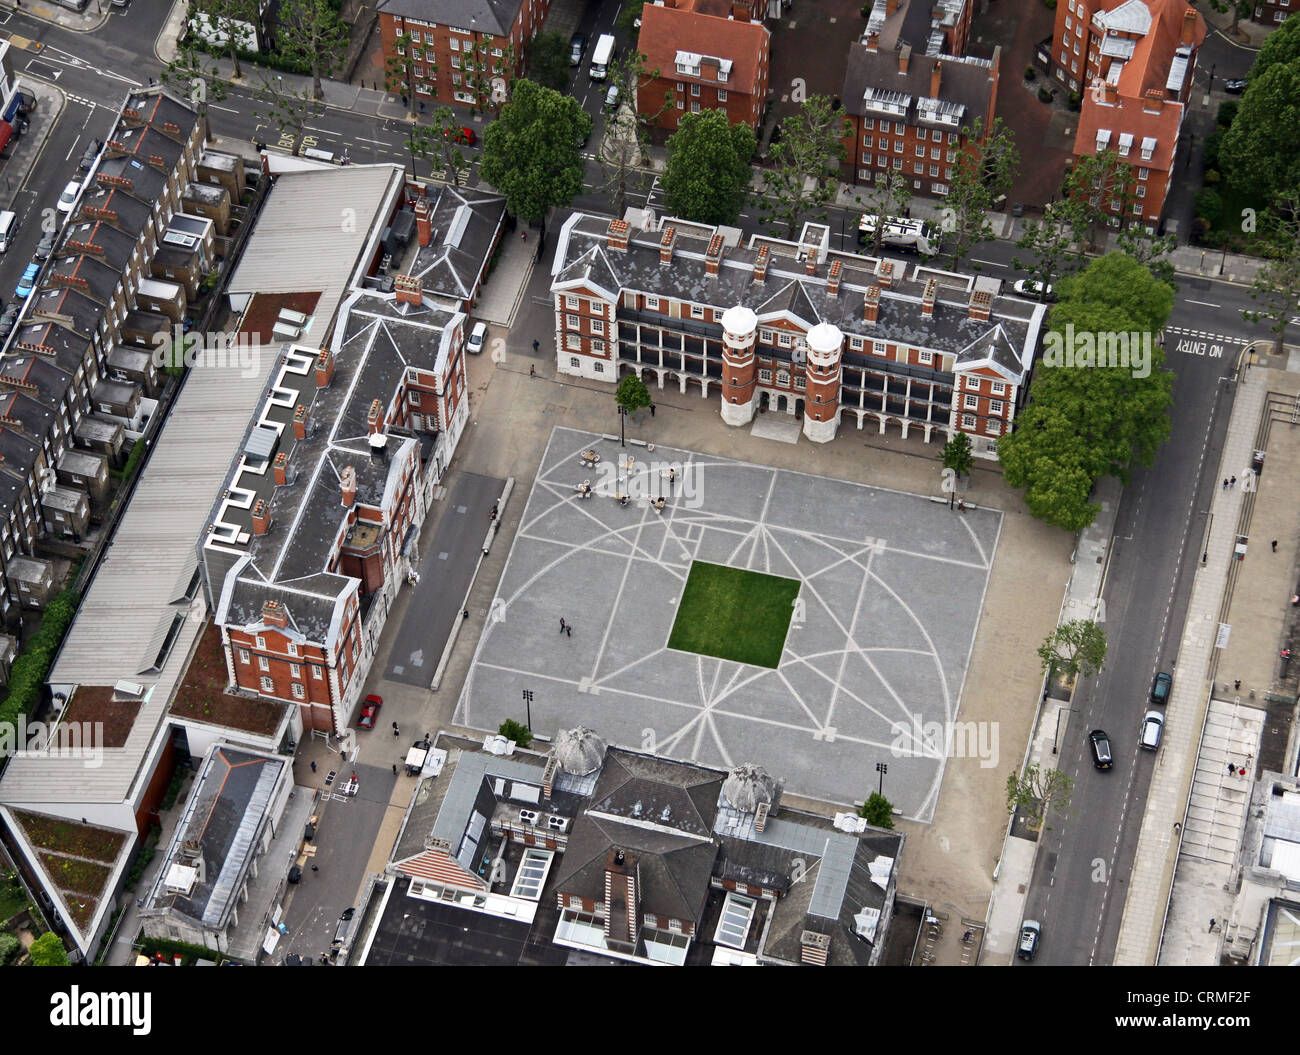 Aerial view of the Chelsea Collage of Art, The University of the Arts London Chelsea to be precise - Stock Image